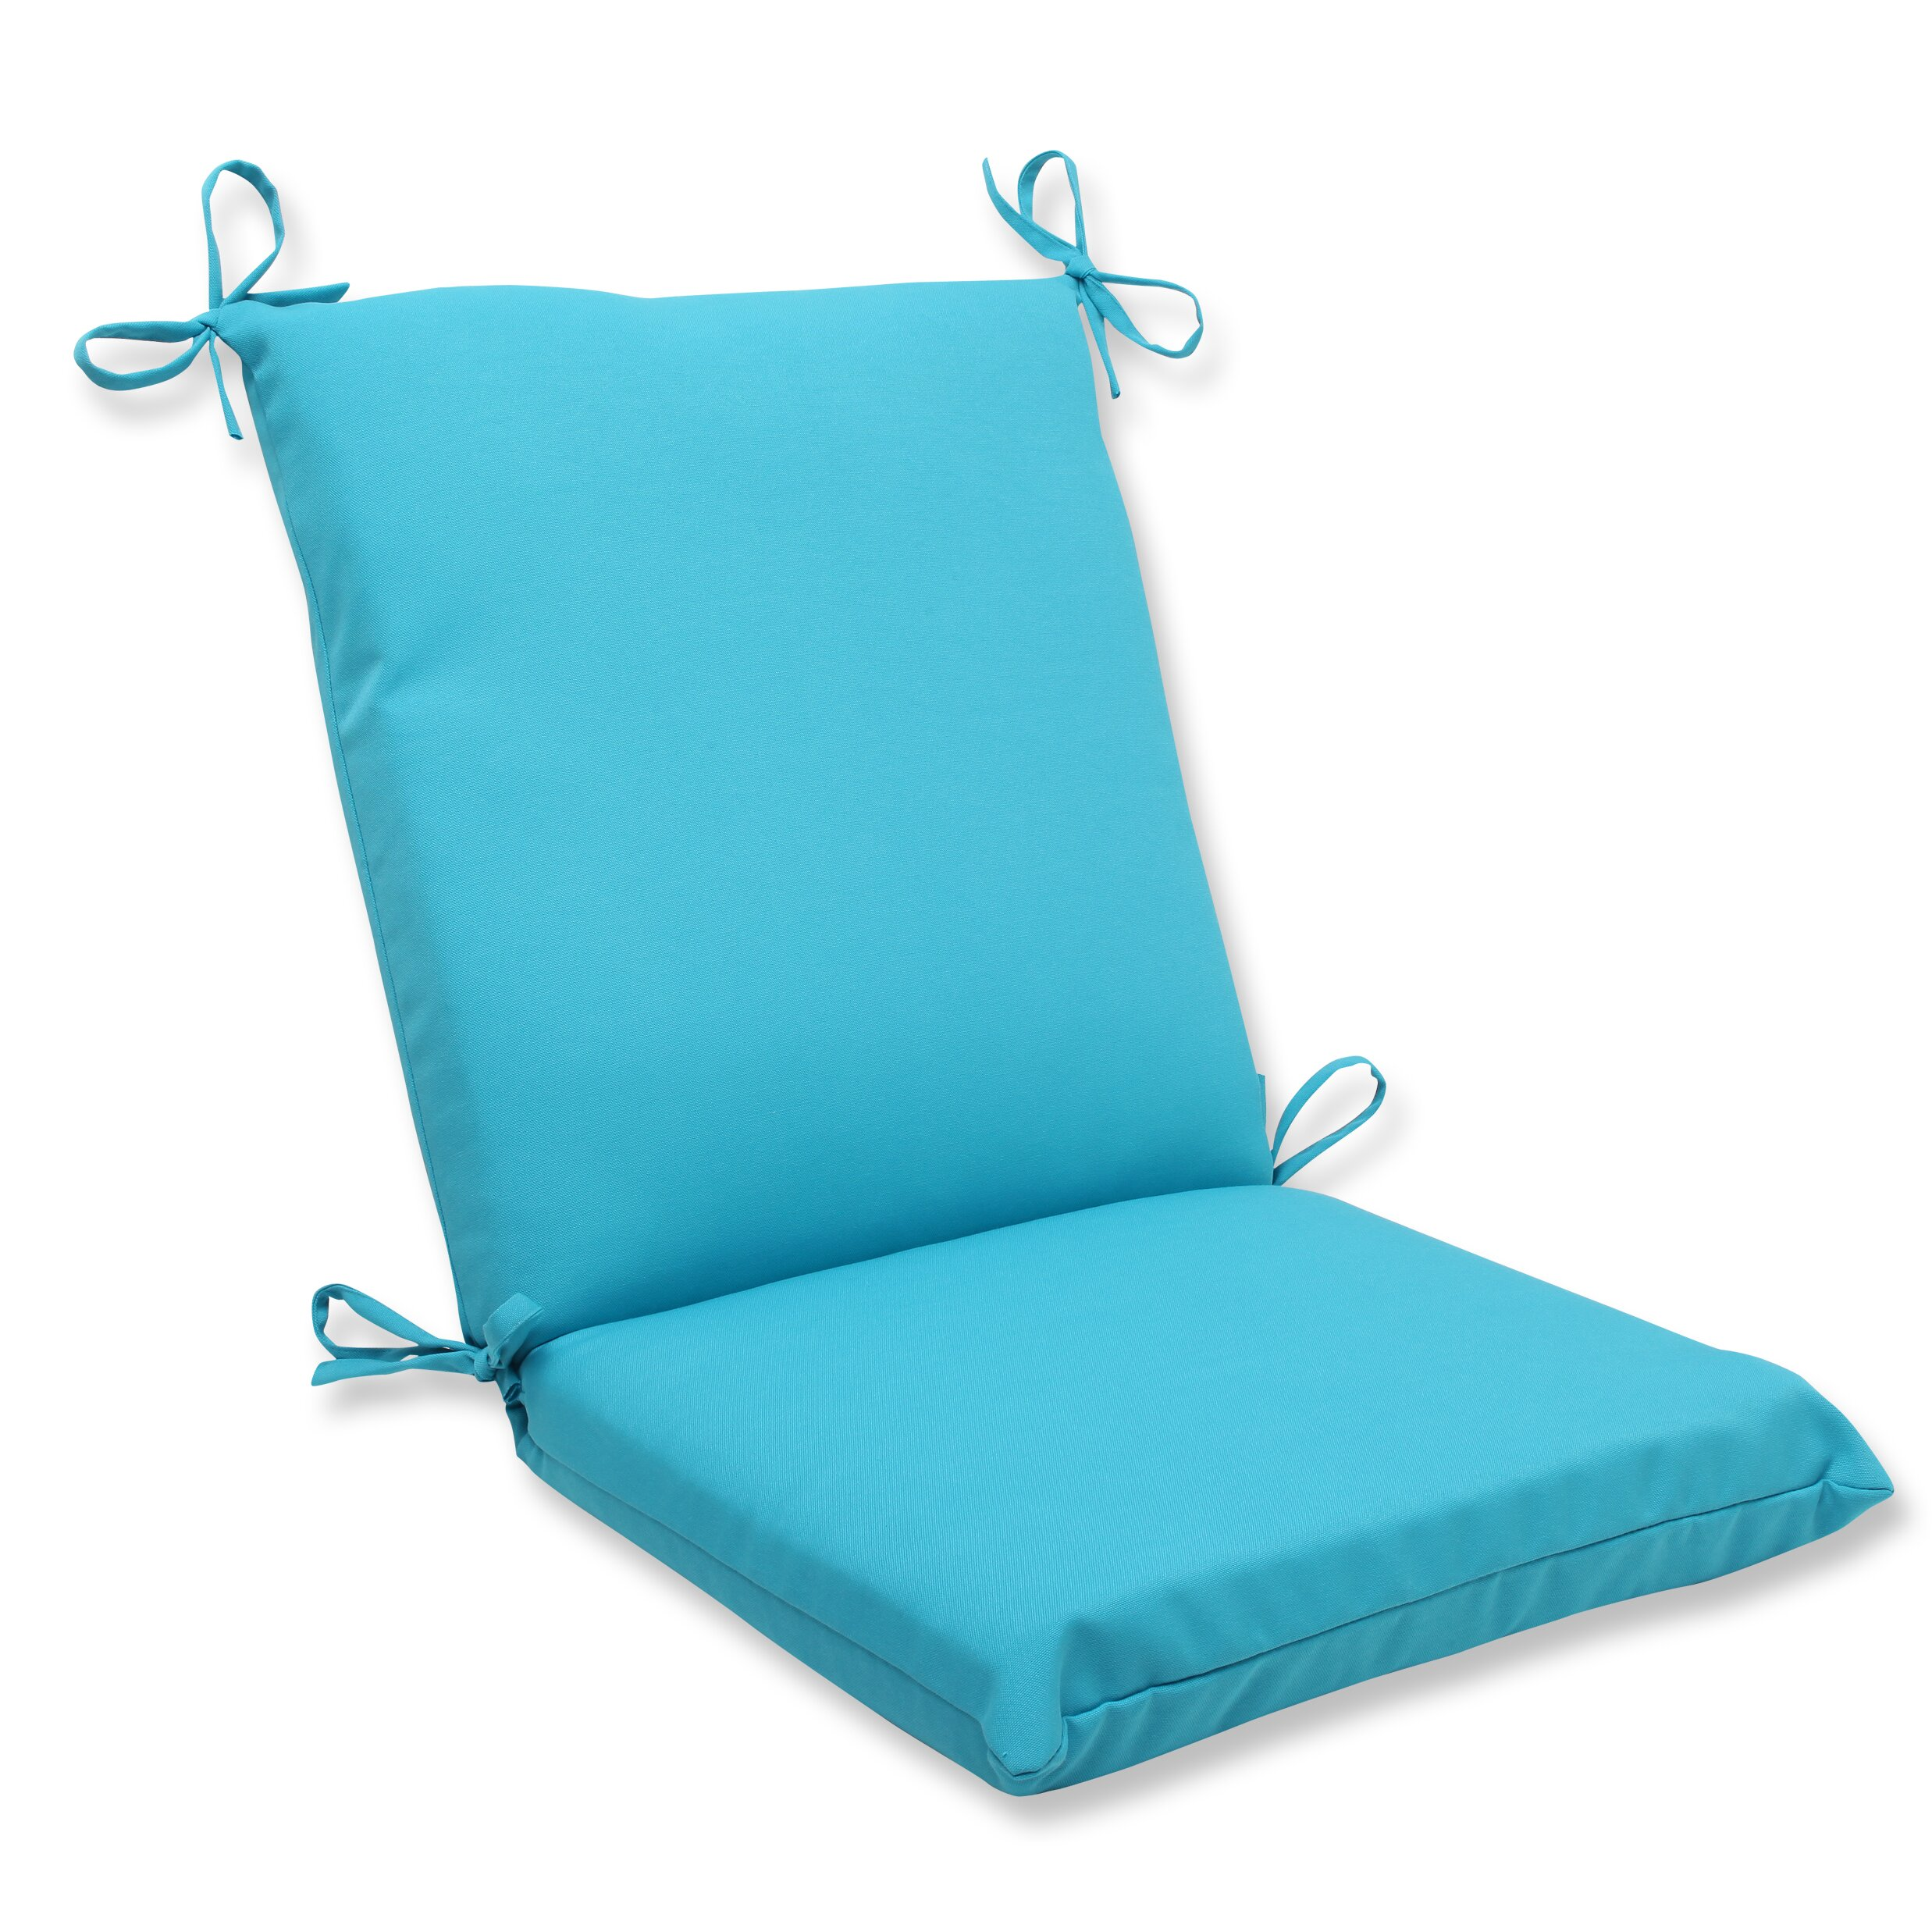 Pillow Perfect Veranda Outdoor Lounge Chair Cushion & Reviews Wayfair